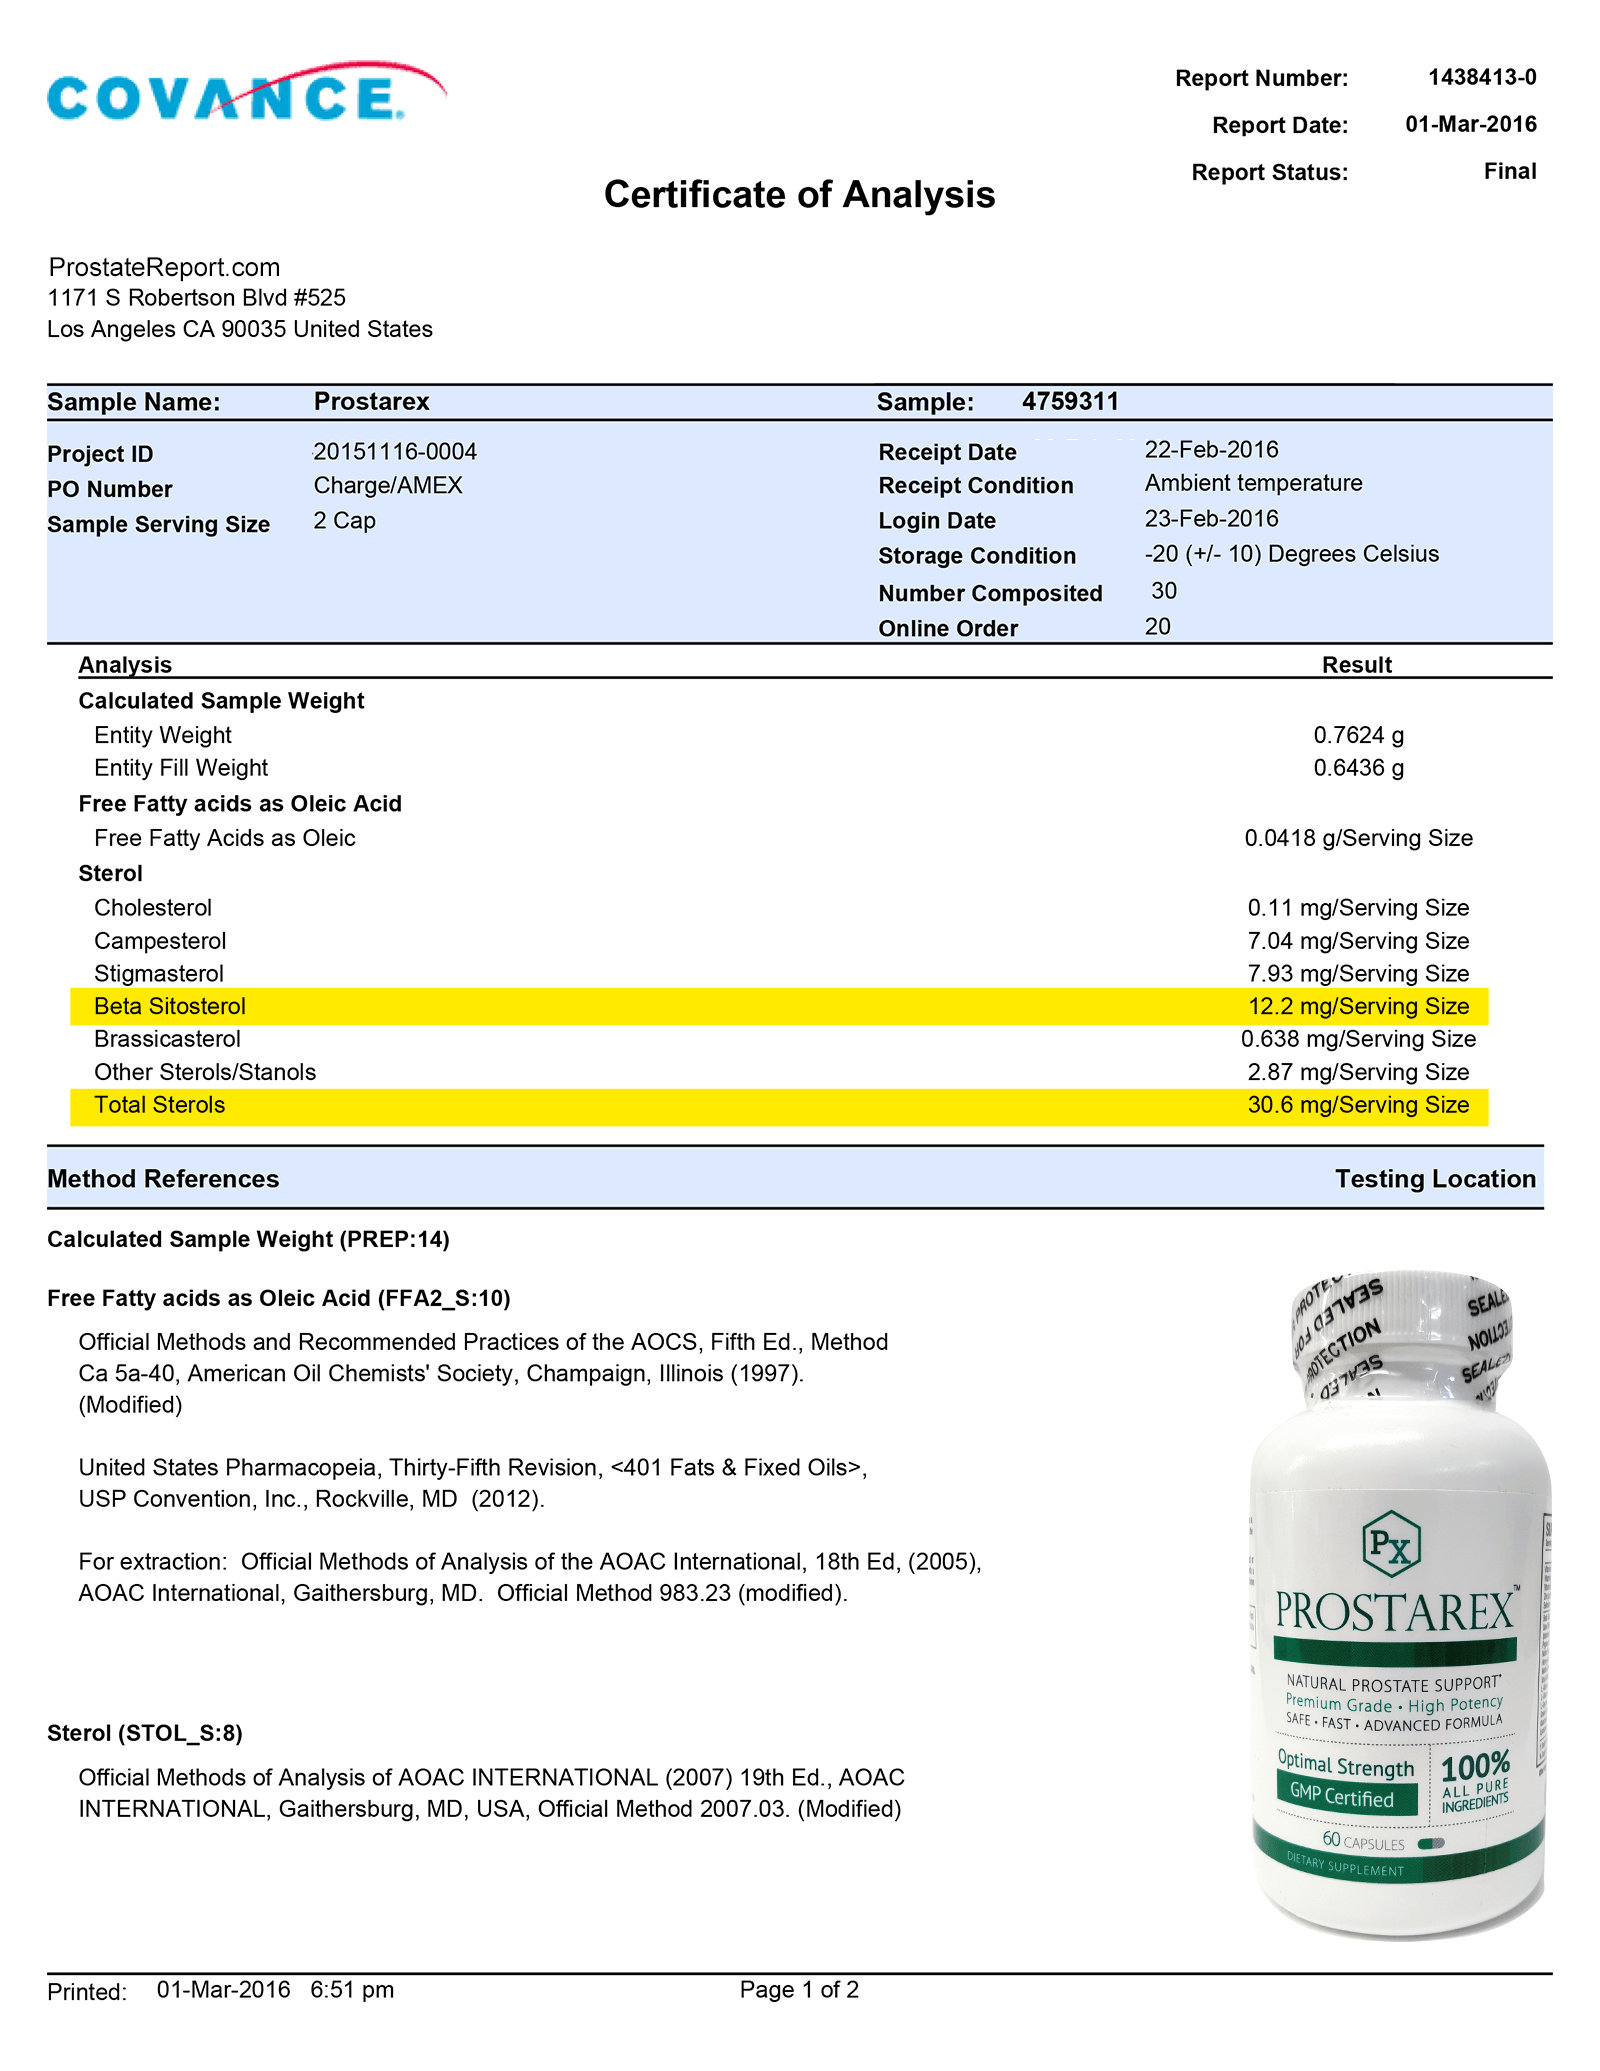 Prostarex lab report